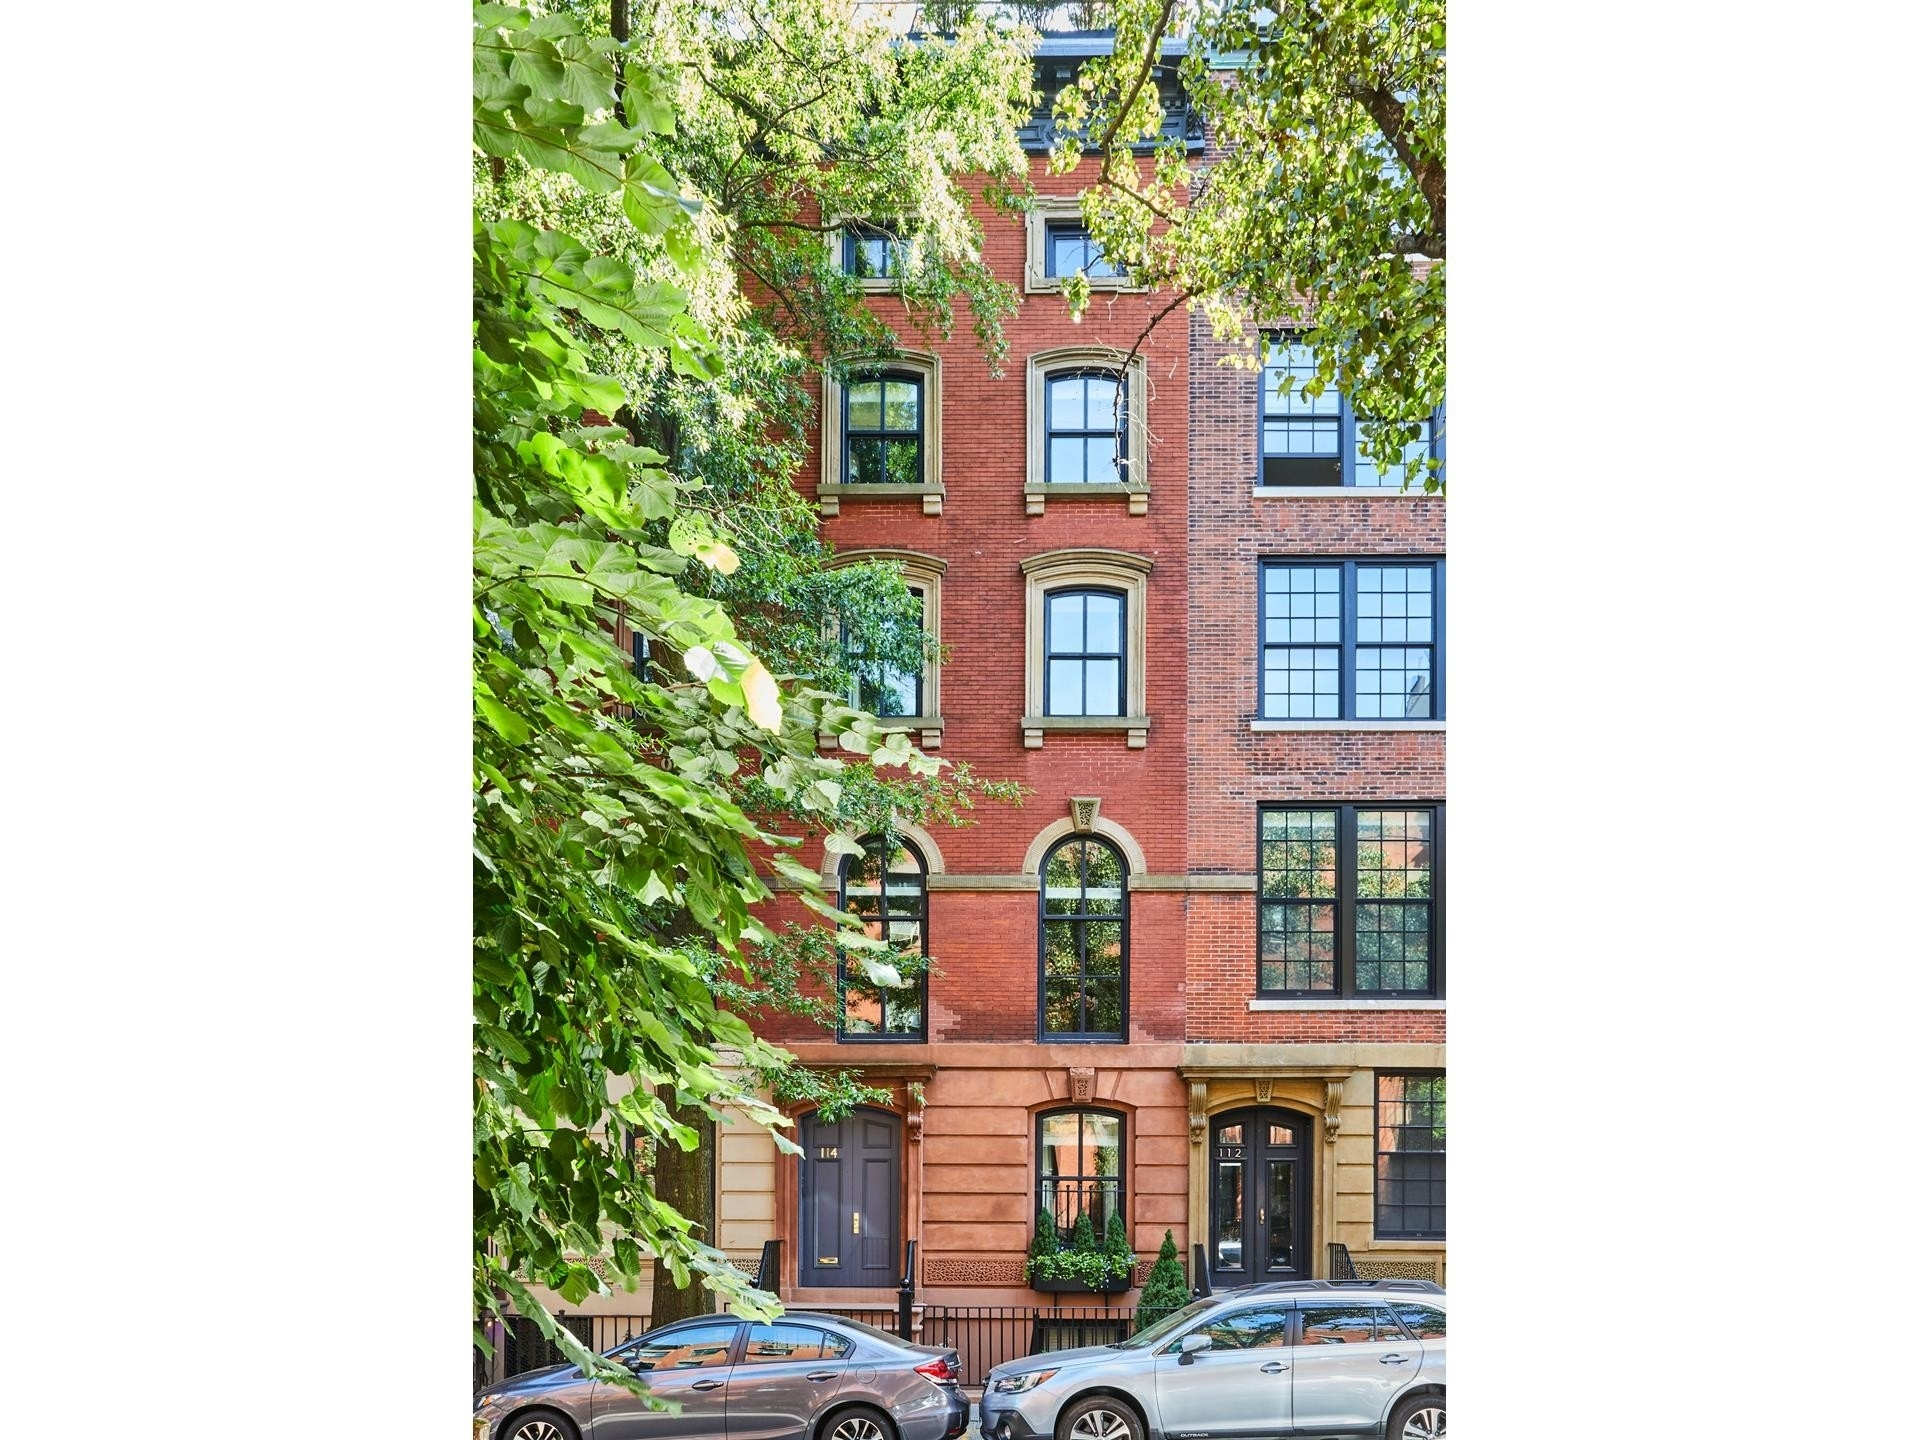 Property at 114 E 10TH ST , TOWNHOUSE East Village, New York, NY 10003